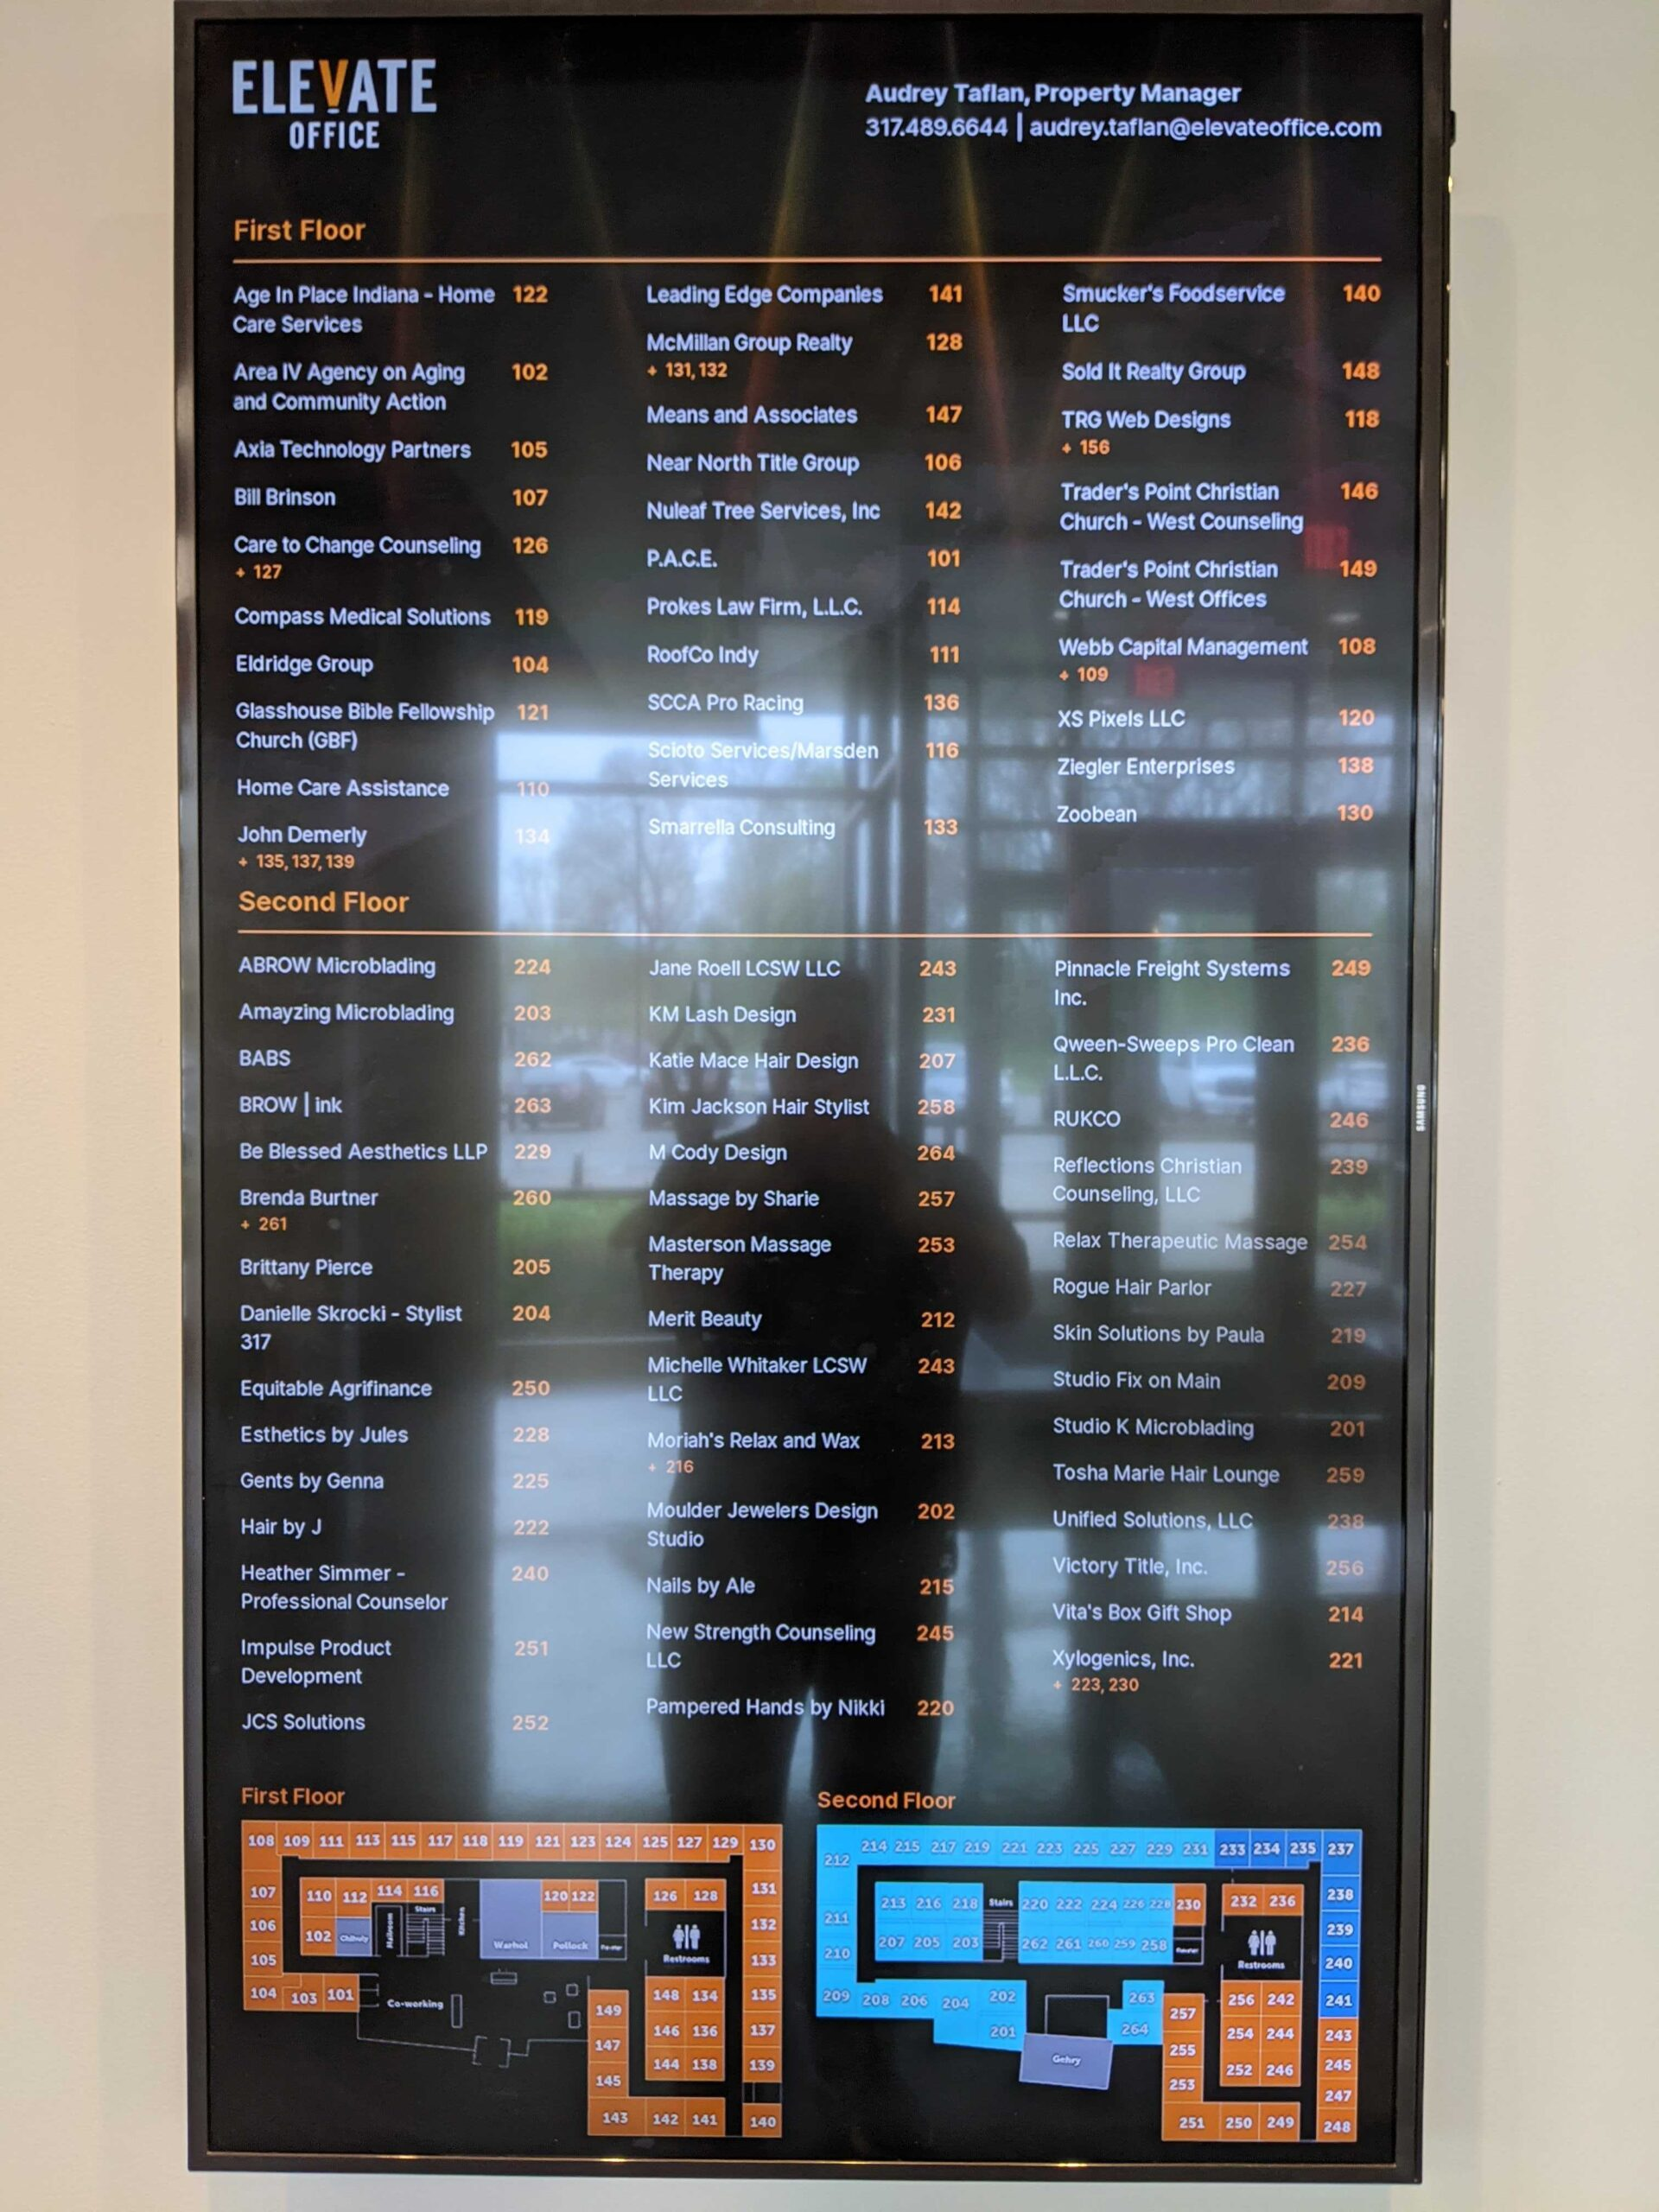 Elevate Office Building Directory